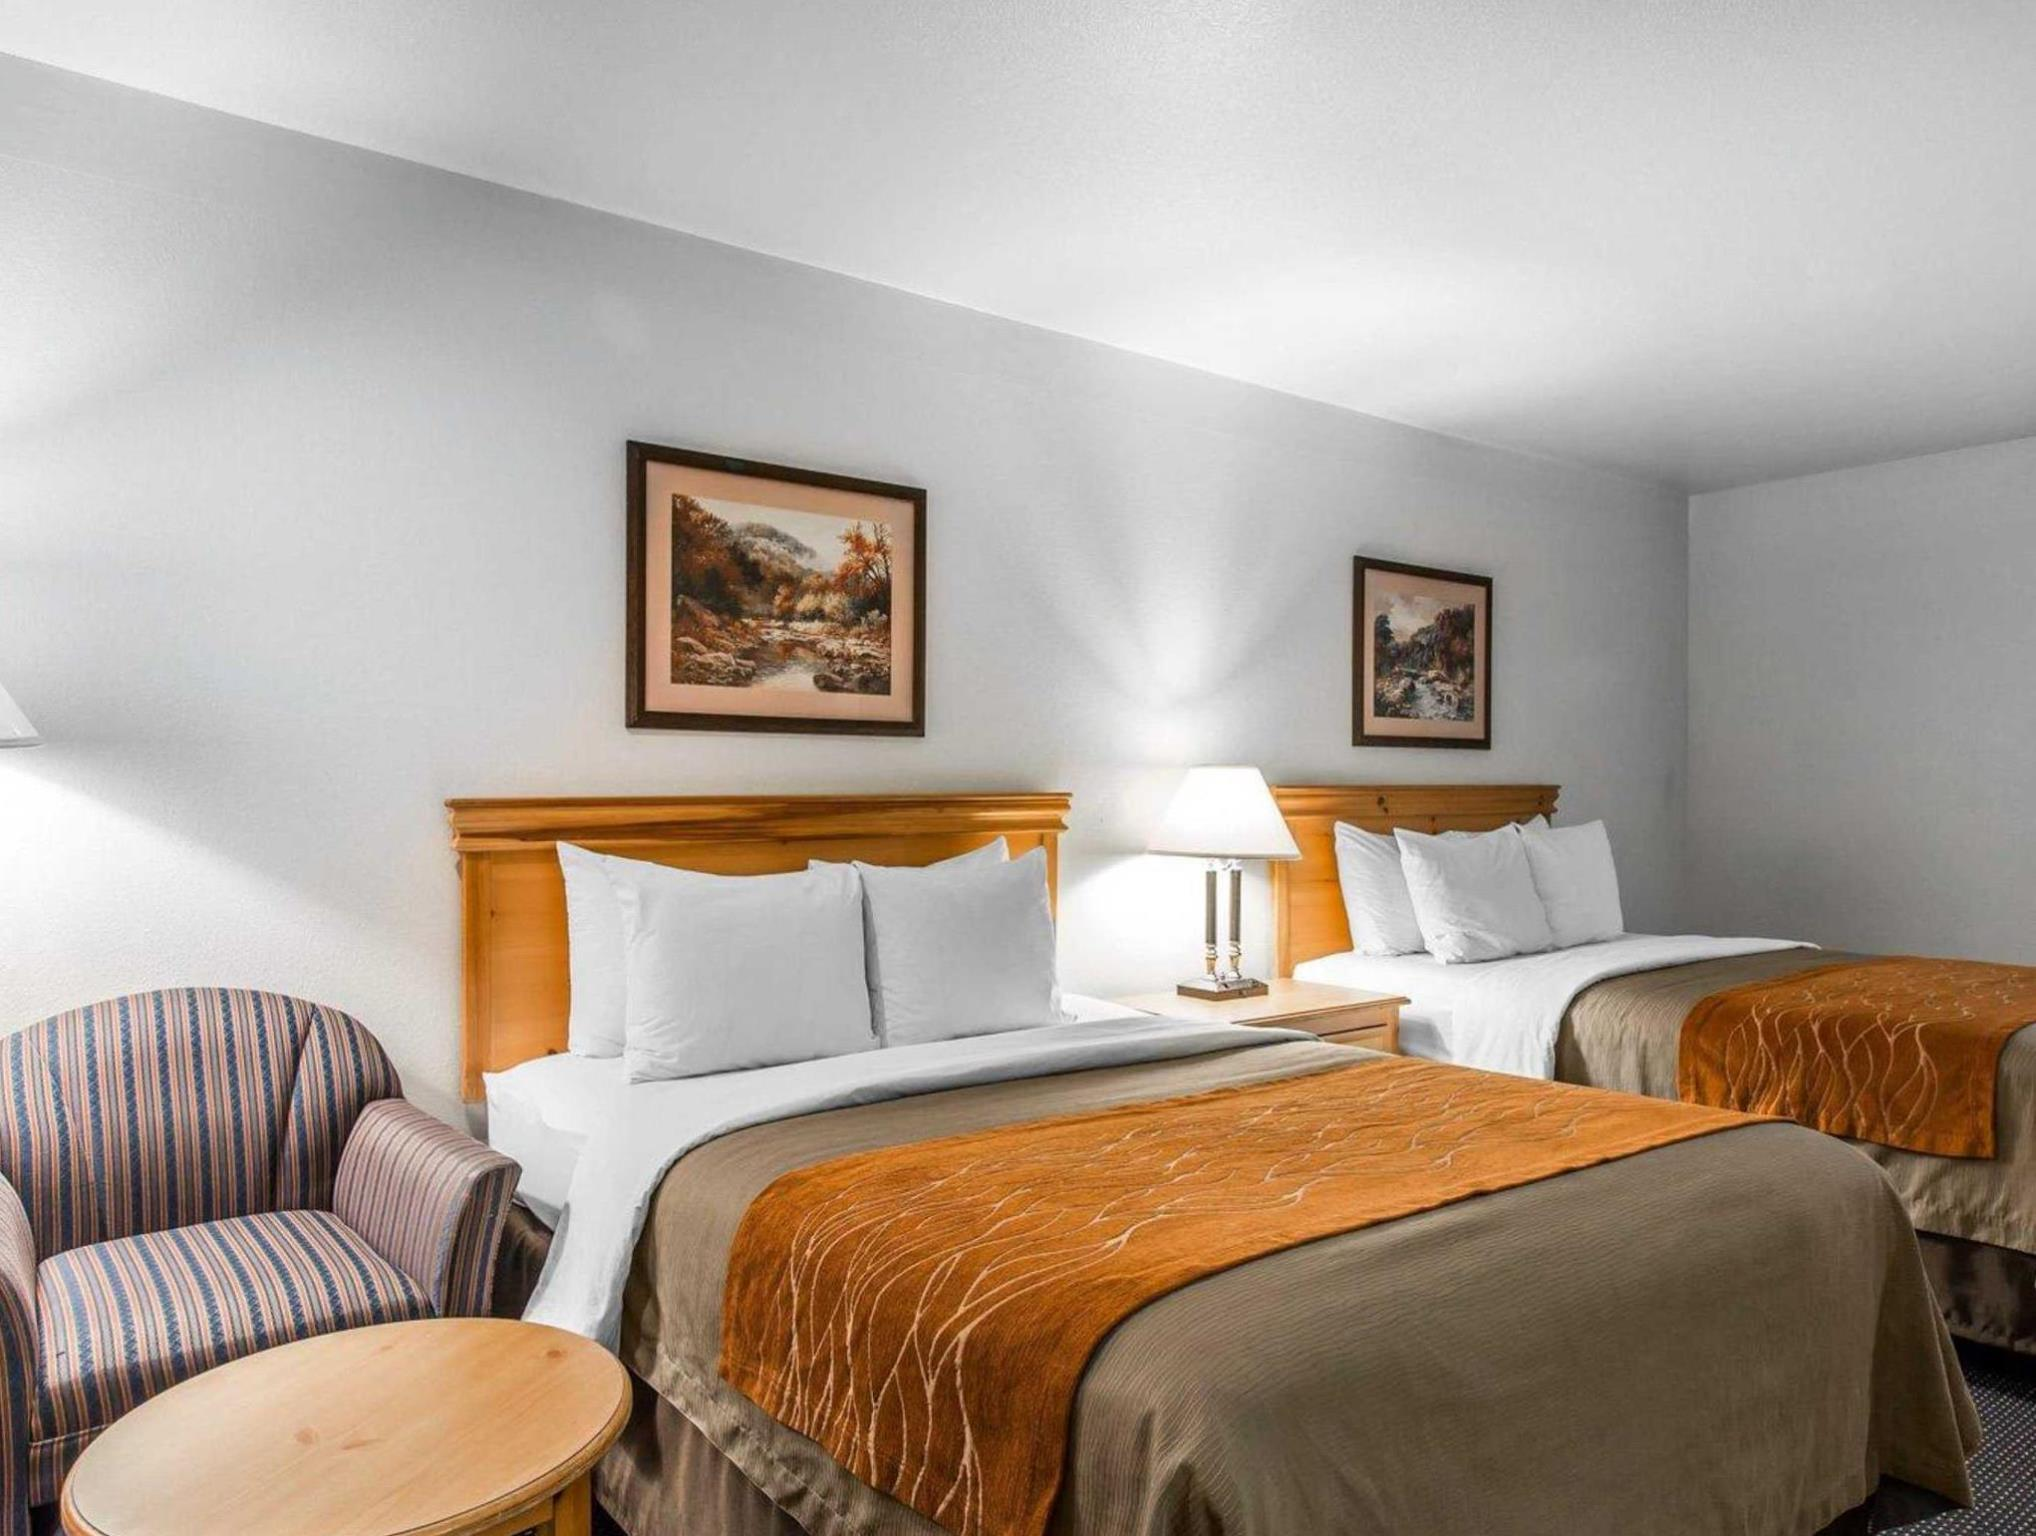 Comfort Inn & Suites Sequoia Kings Canyon Discount